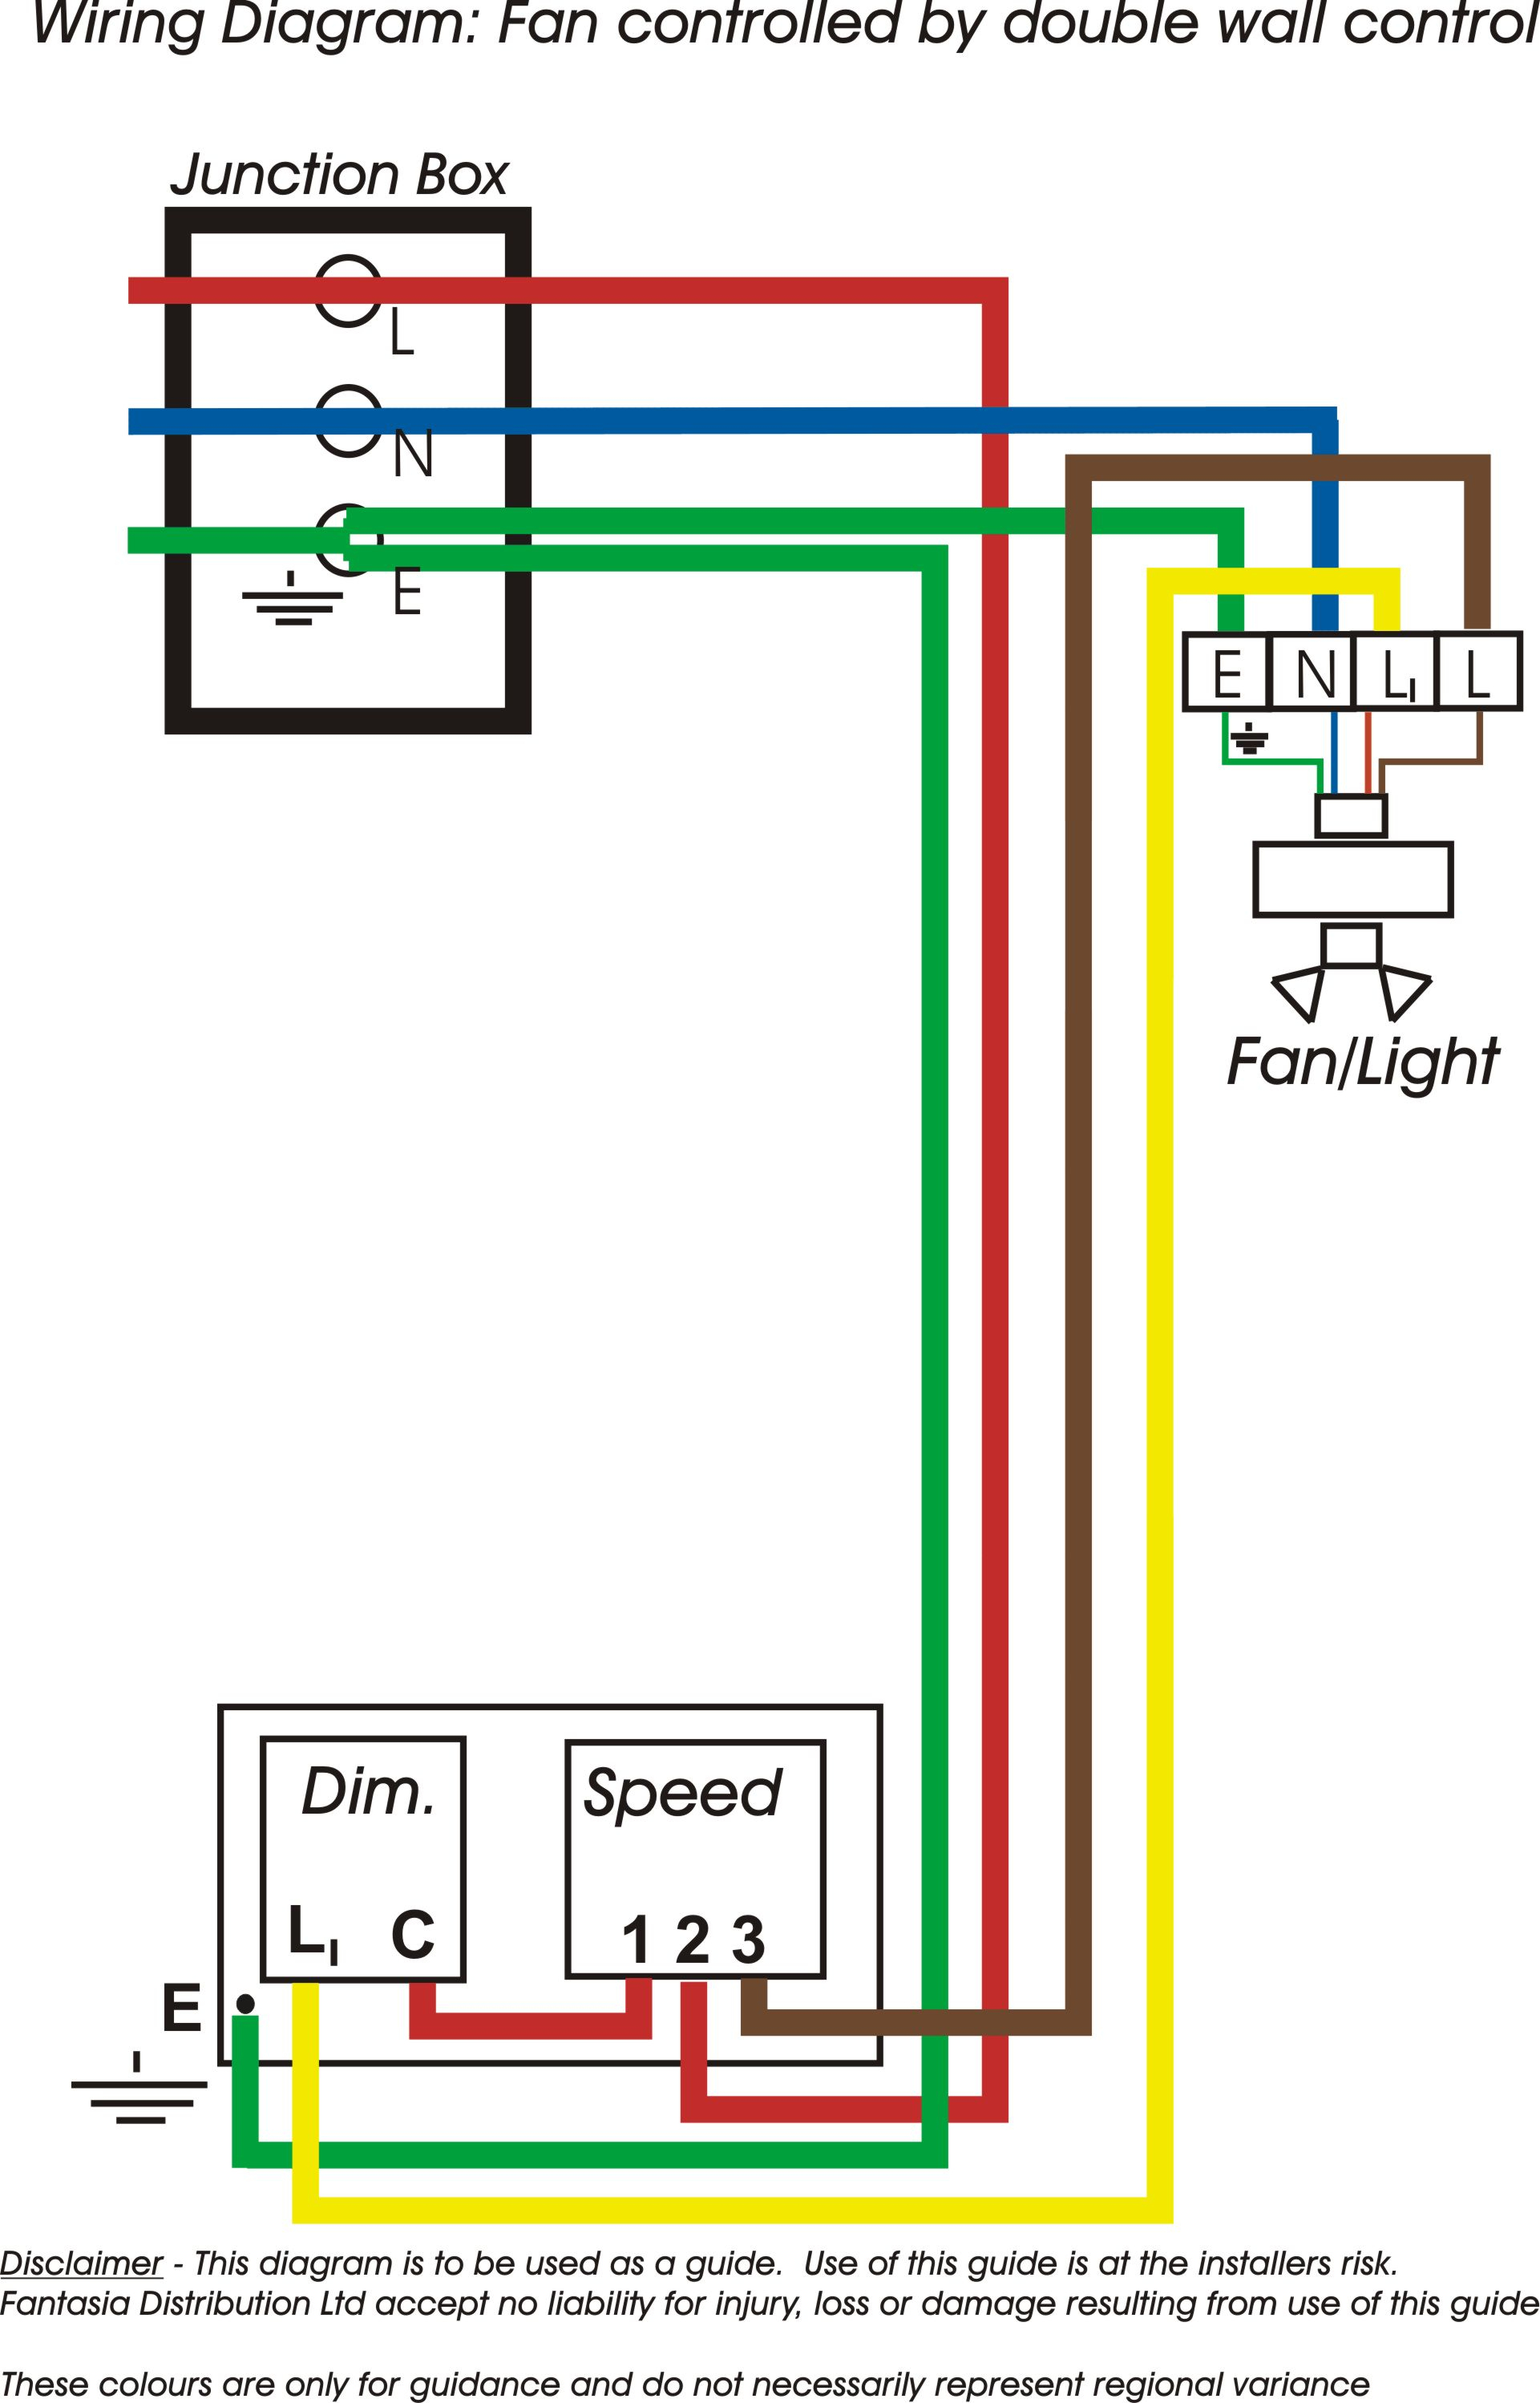 Hunter Ceiling Fans Wiring Instructions | Manual E-Books - Hunter Ceiling Fan Wiring Diagram With Remote Control